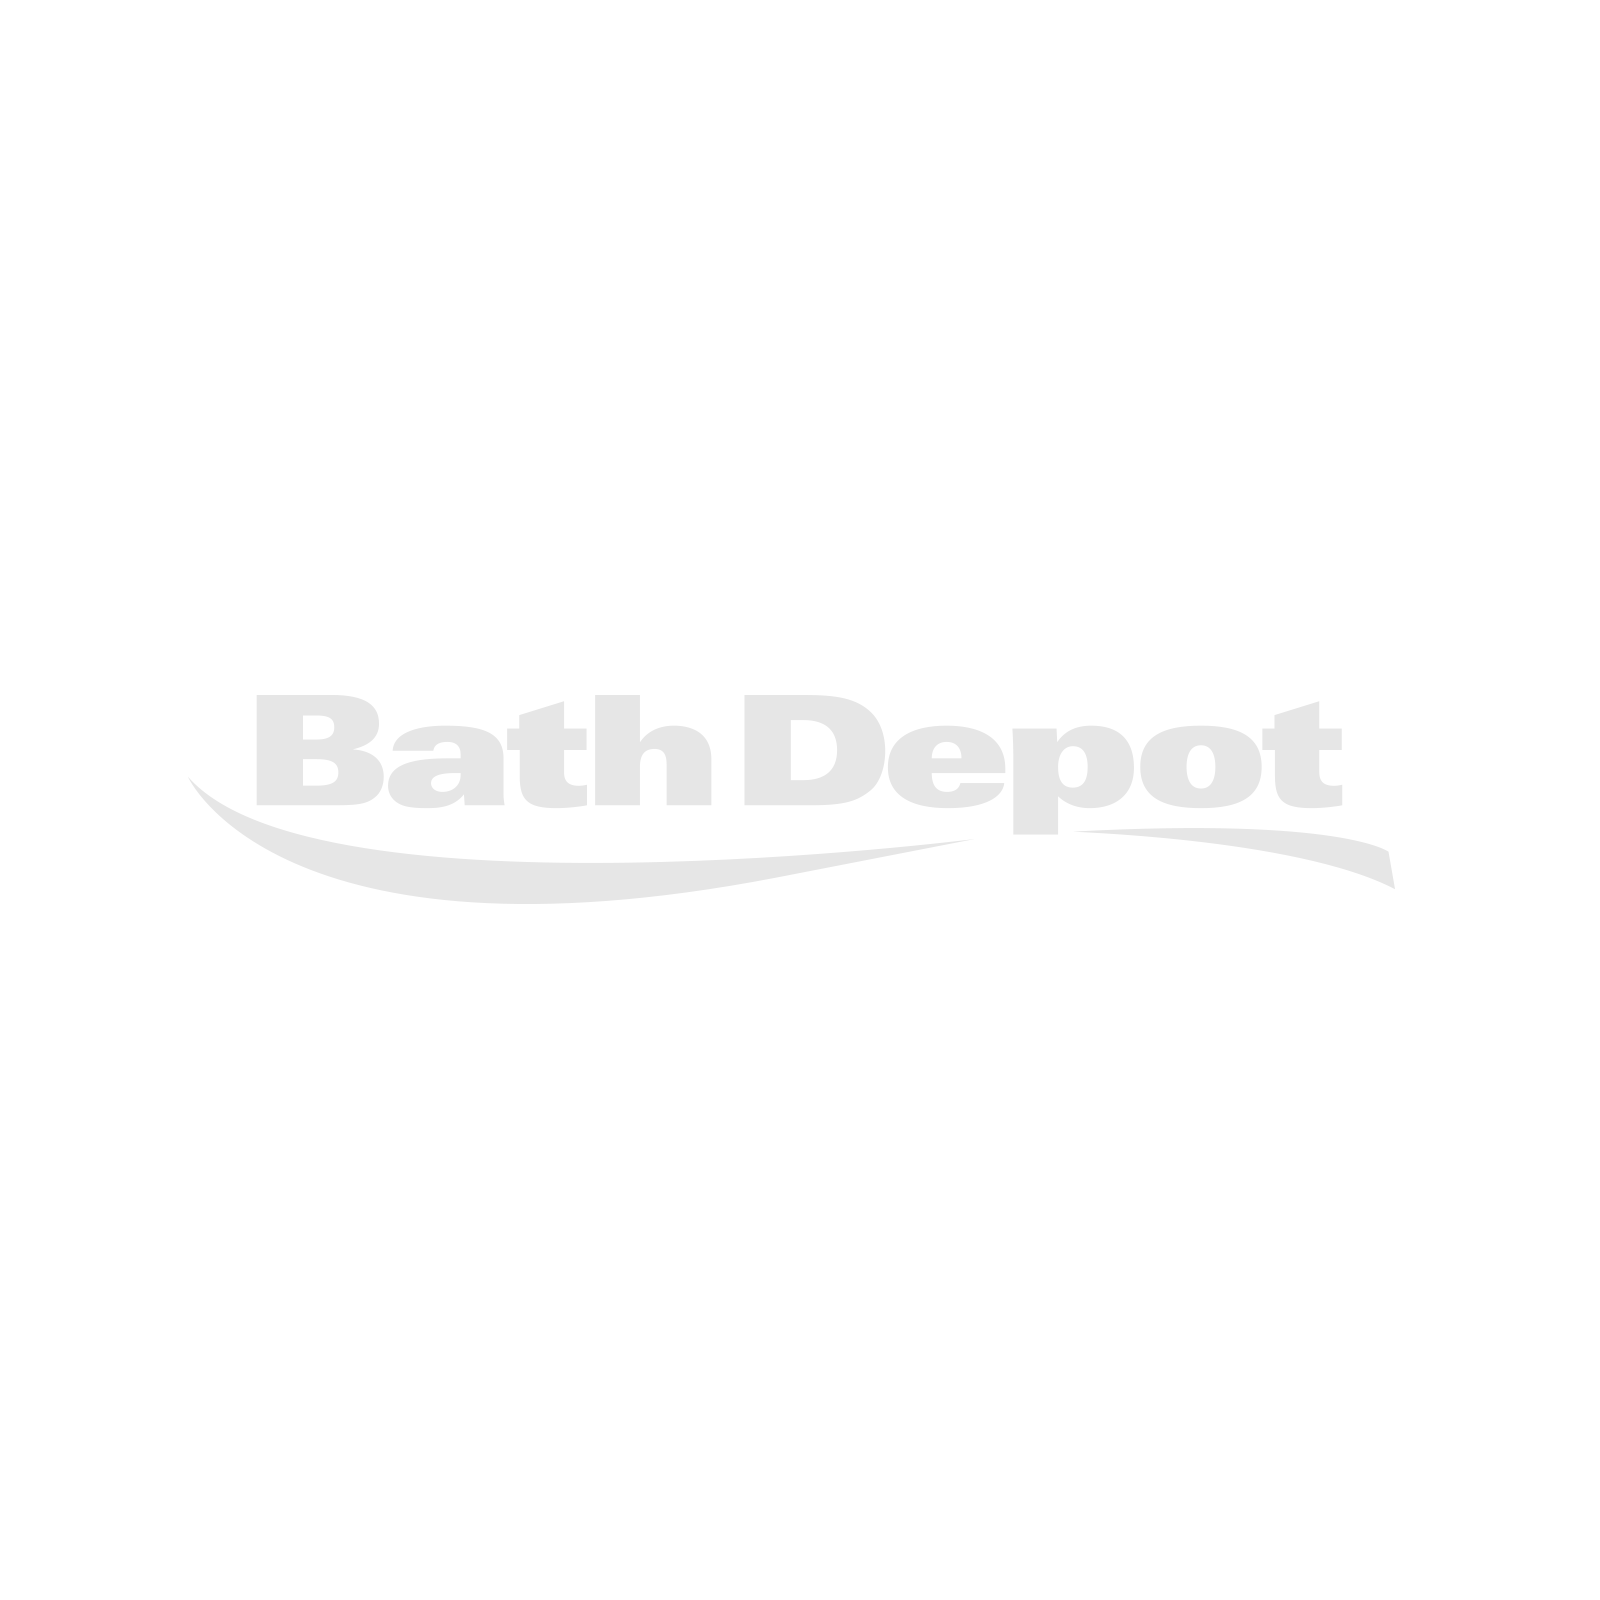 Bamboo and chrome extendable bath caddy